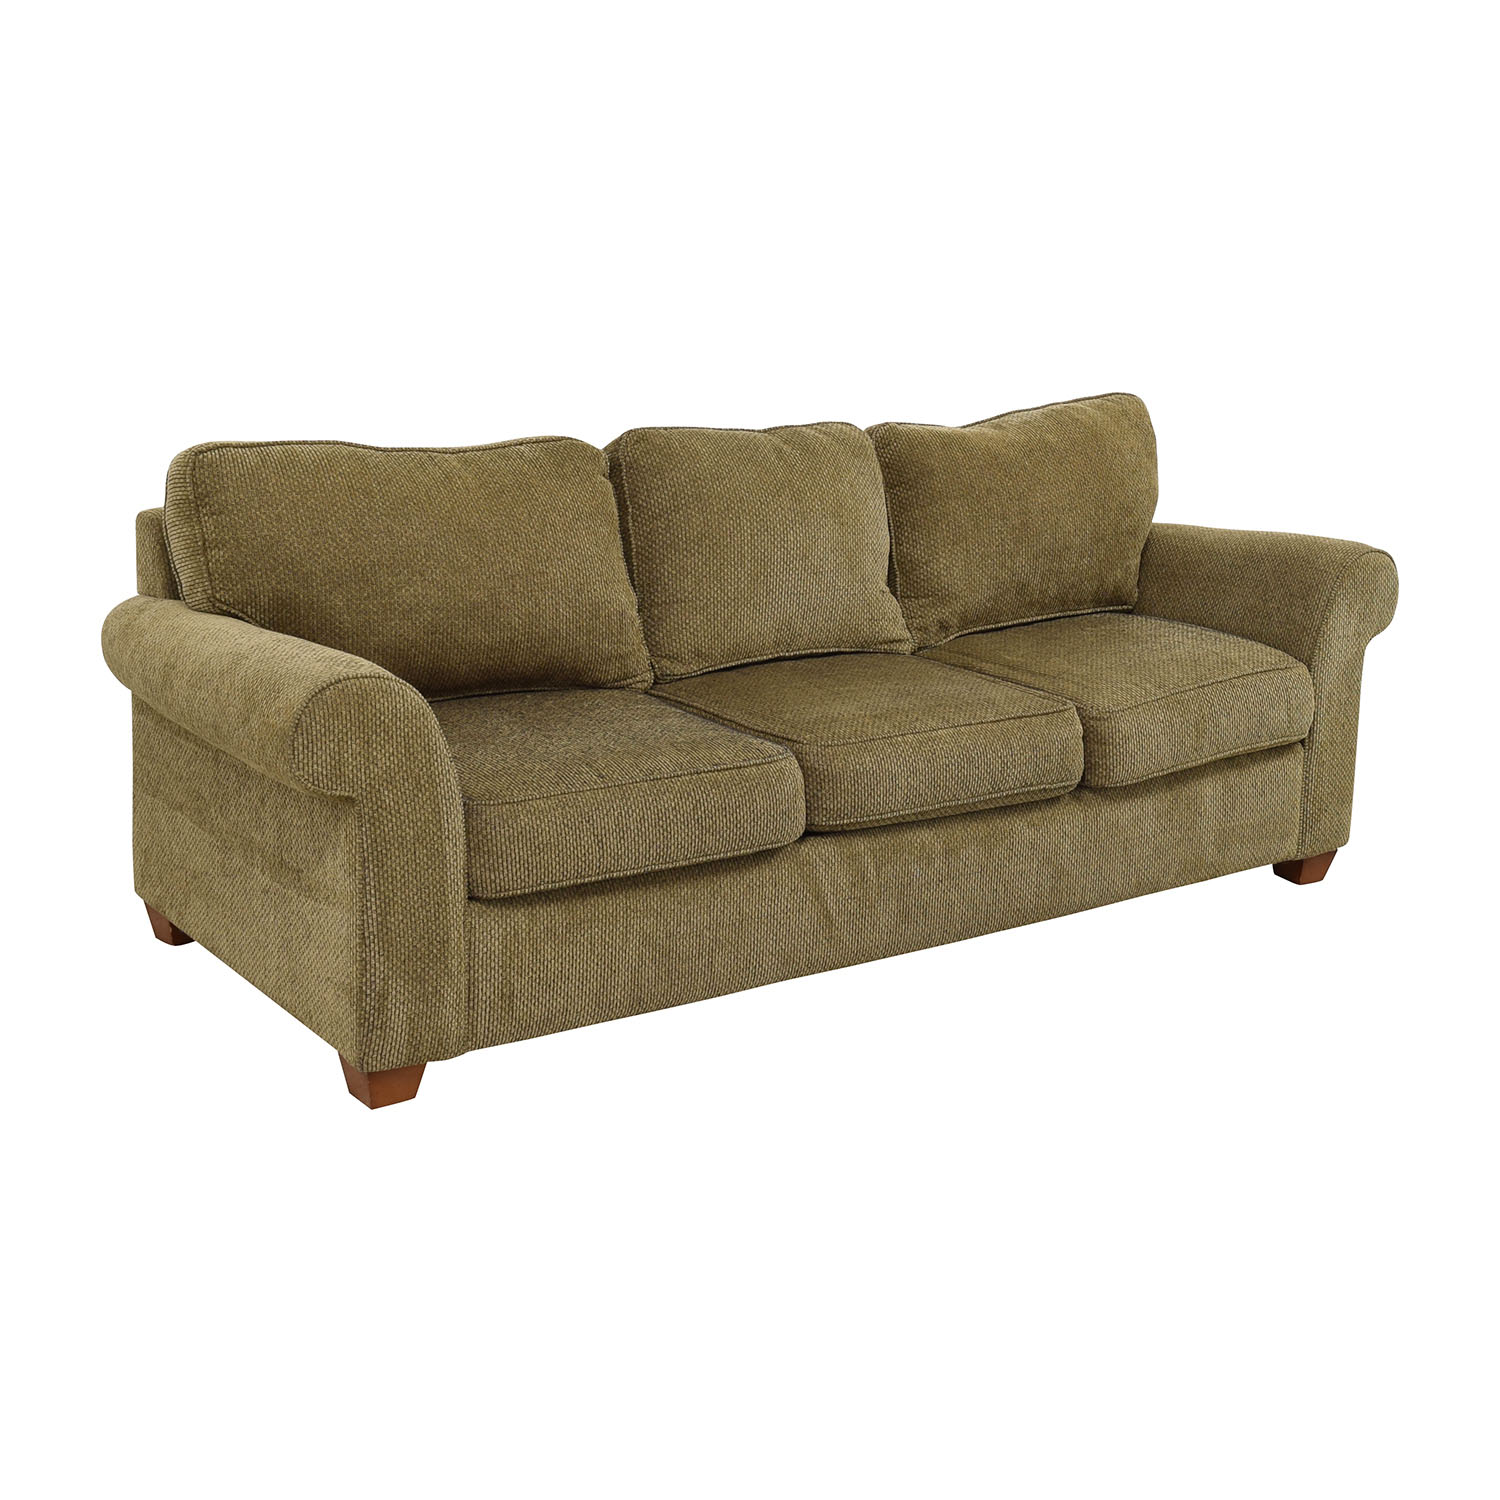 Tweed fabric sofa mid century modern sofa by selig with for Leather and tweed sofa